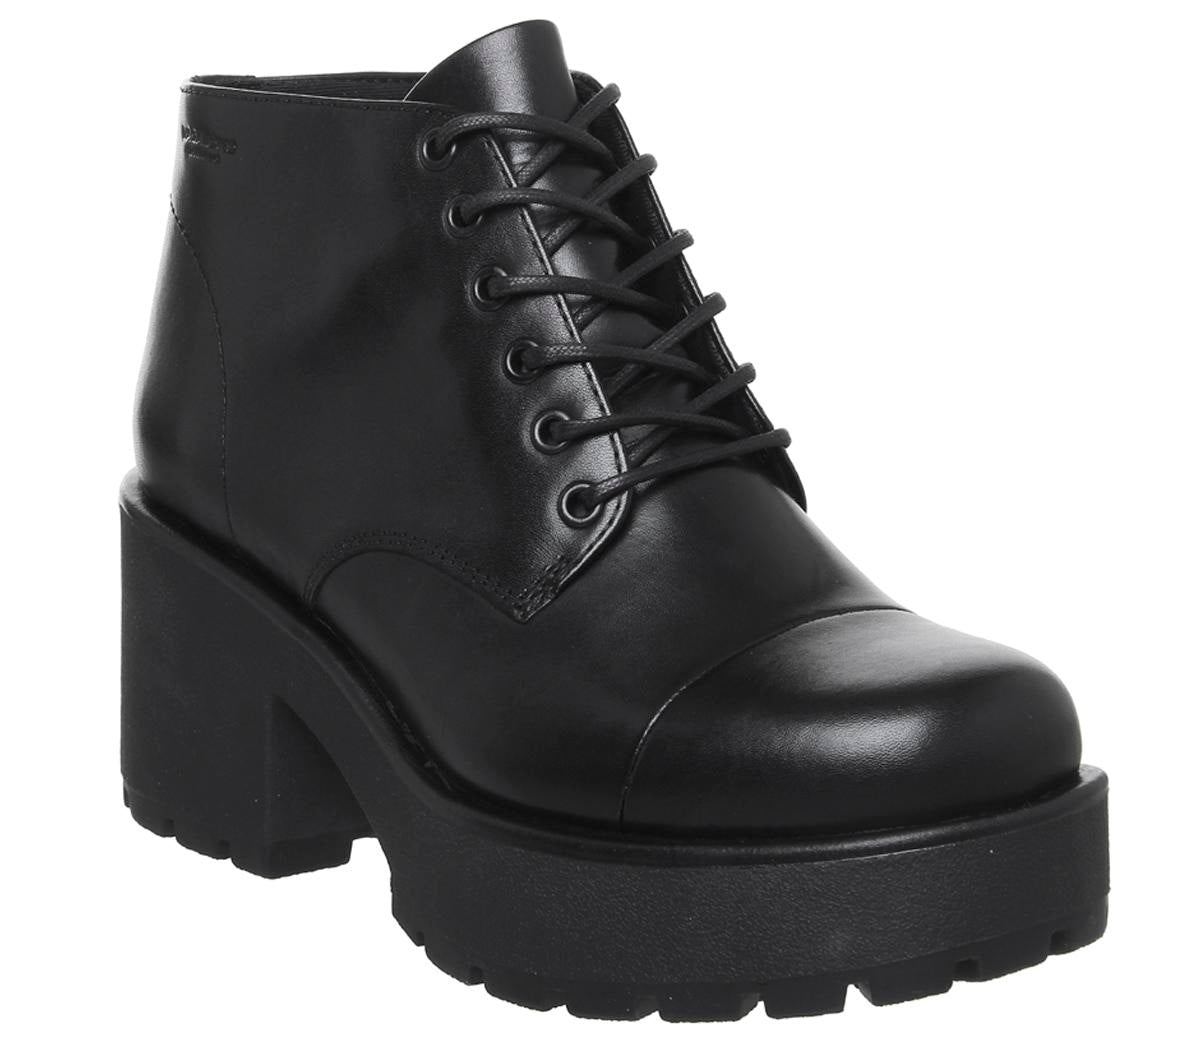 Womens Vagabond Dioon Lace Up Boot Black Leather New